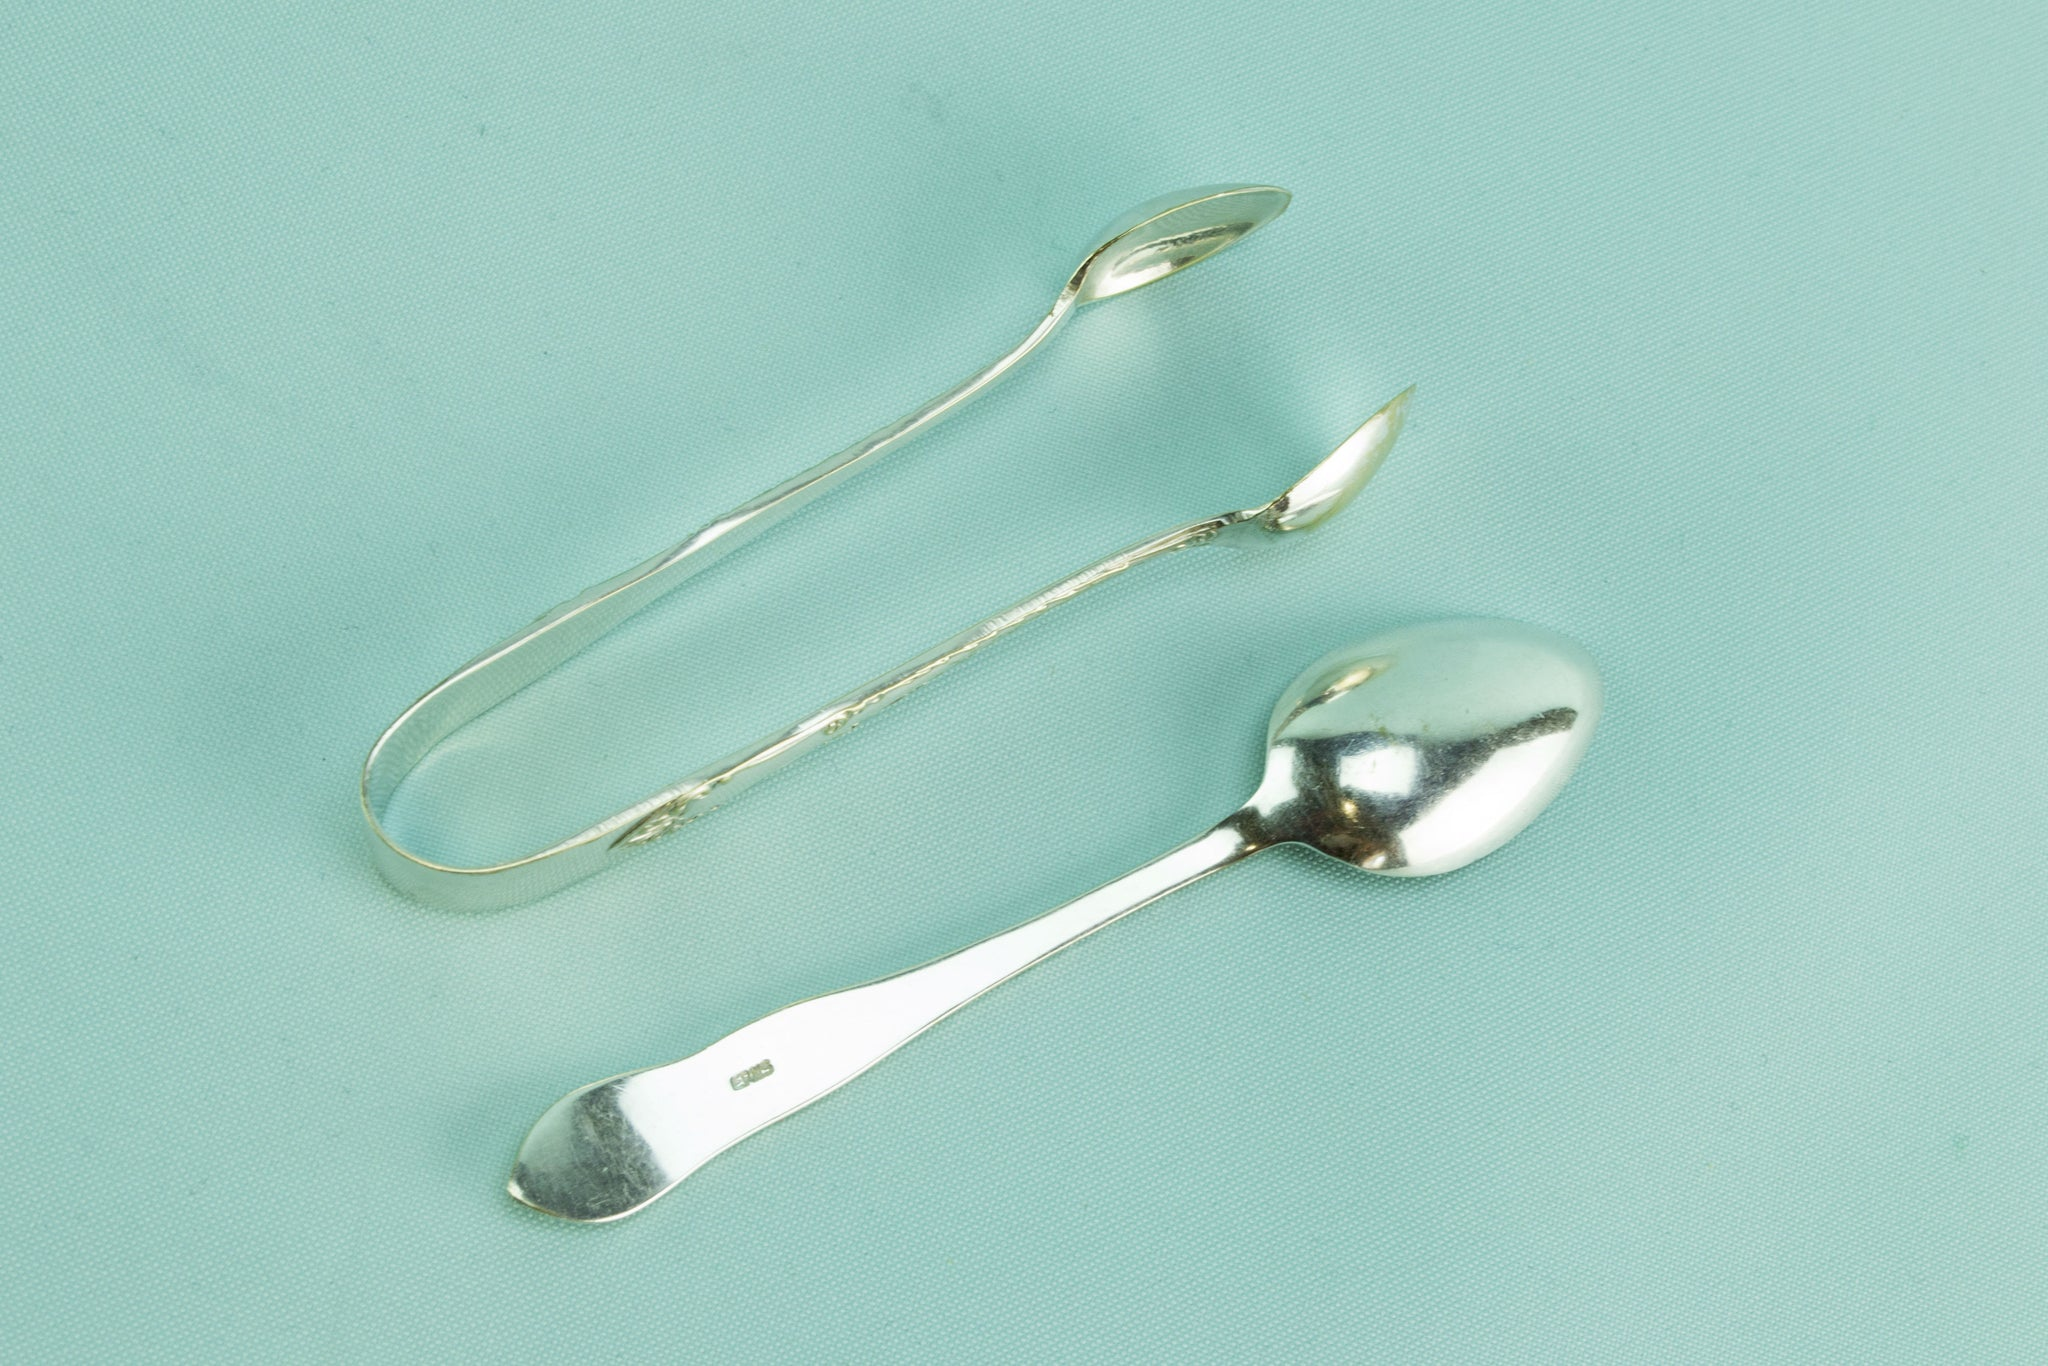 Tea or coffee spoons set, circa 1900 by Lavish Shoestring